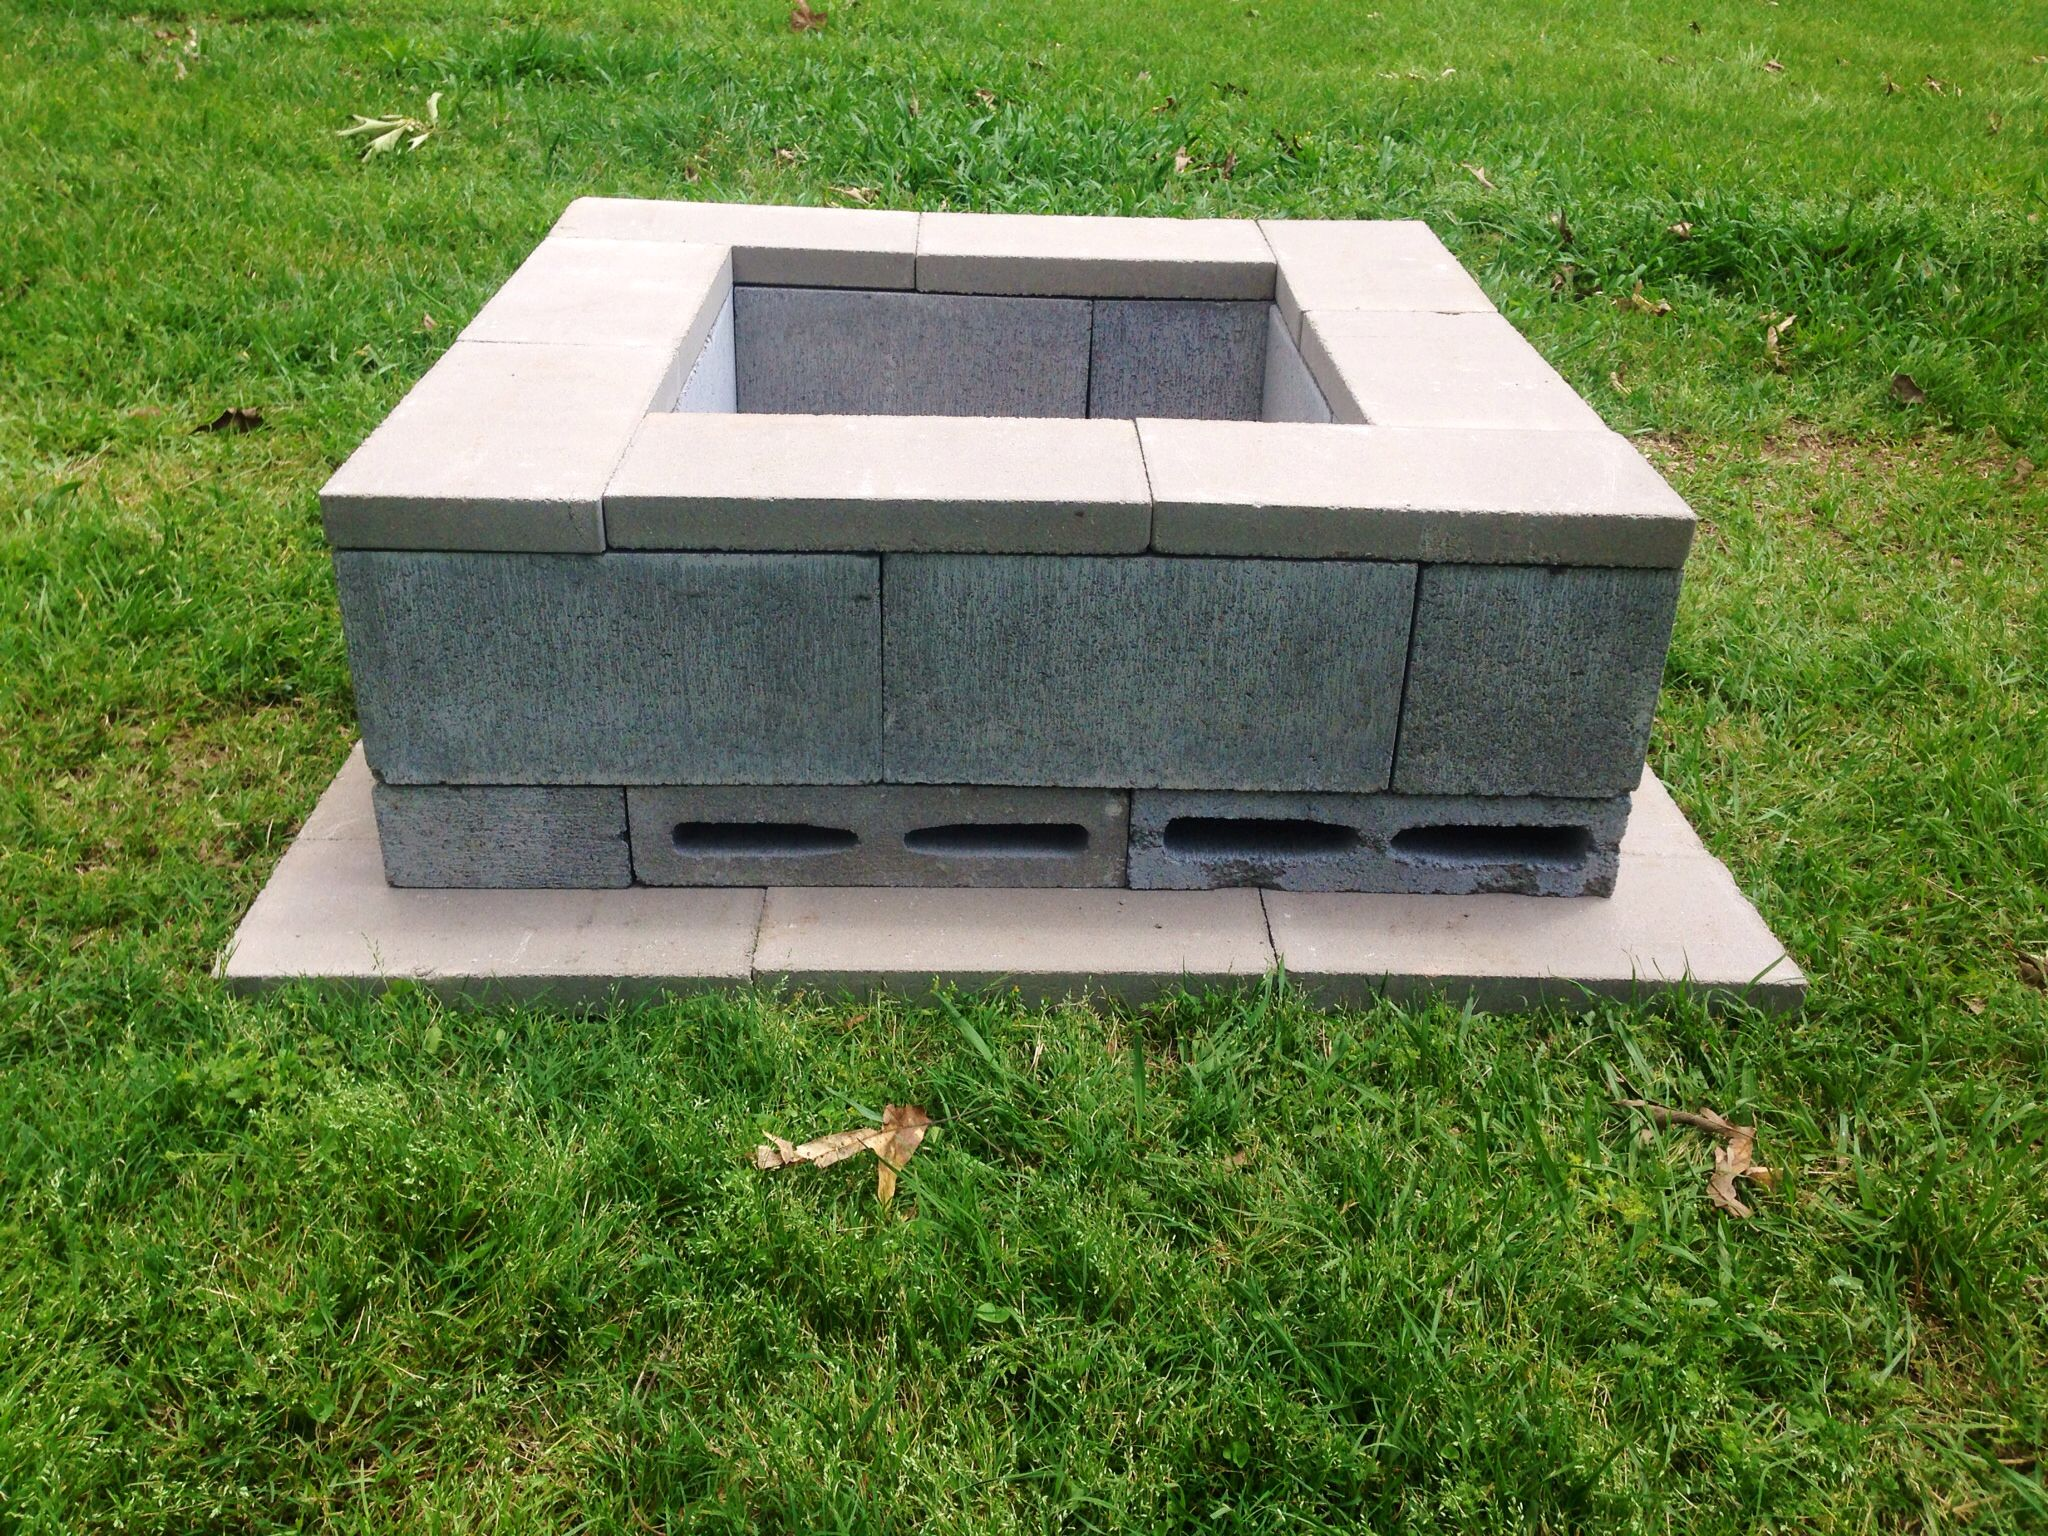 Diy fire pit we used 26 18x6x2 flats 8 cinder blocks for How to build a block fire pit